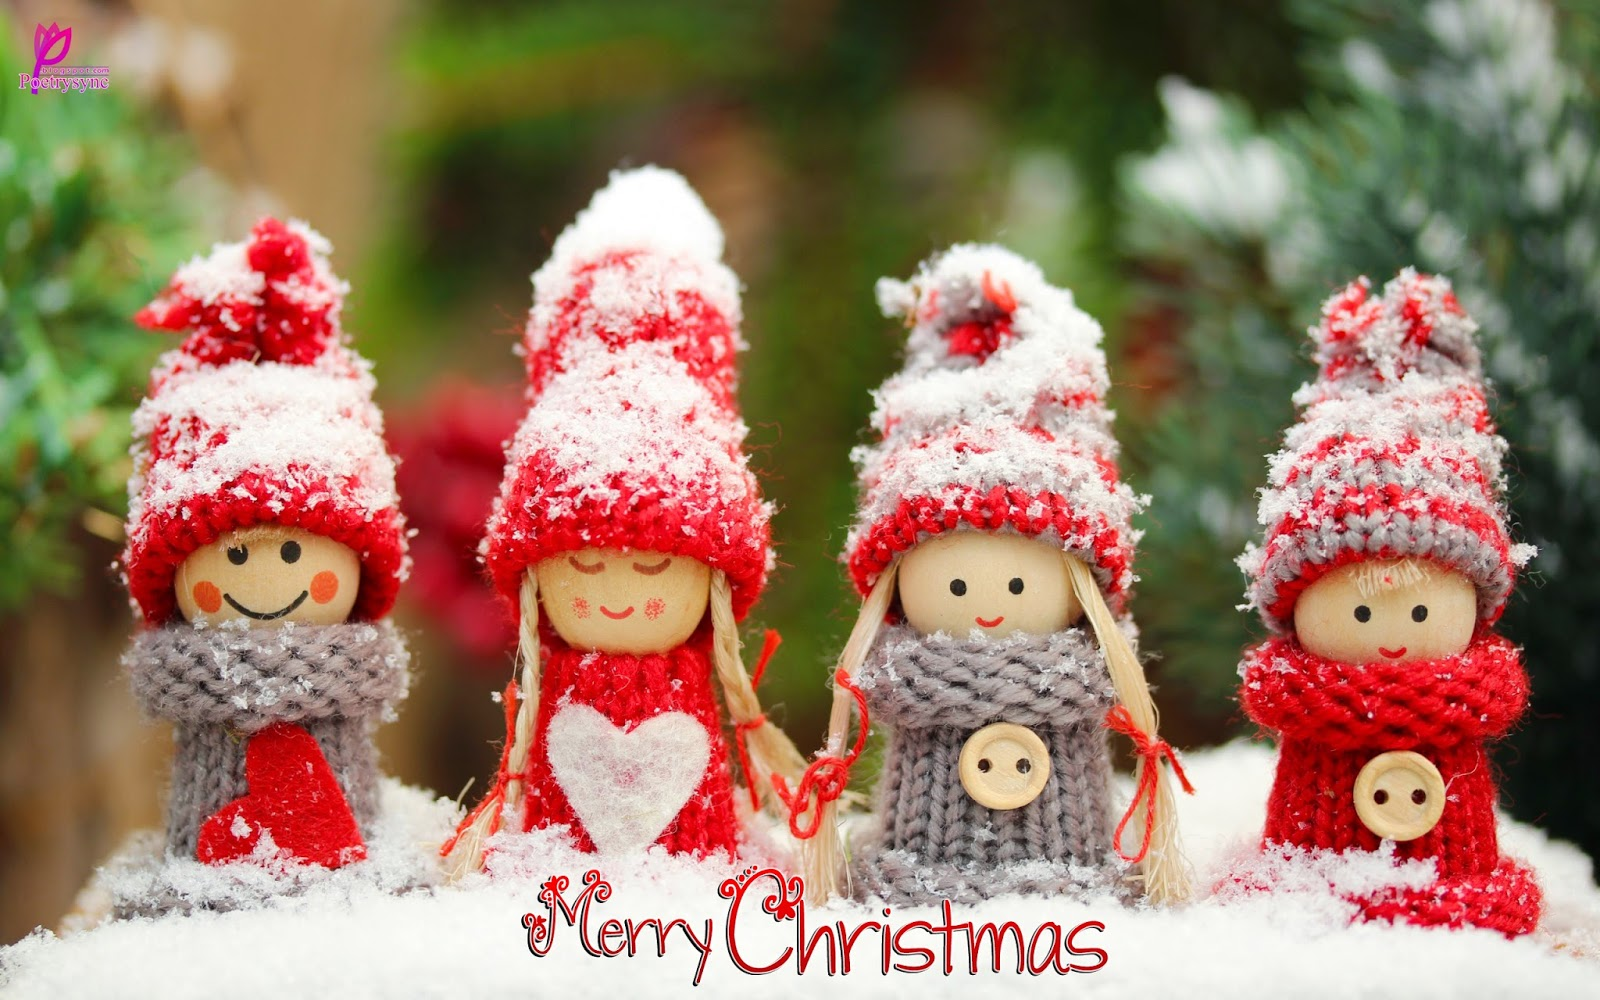 Latest Happy Merry Christmas Images 2018 For Facebook And Whatsappp